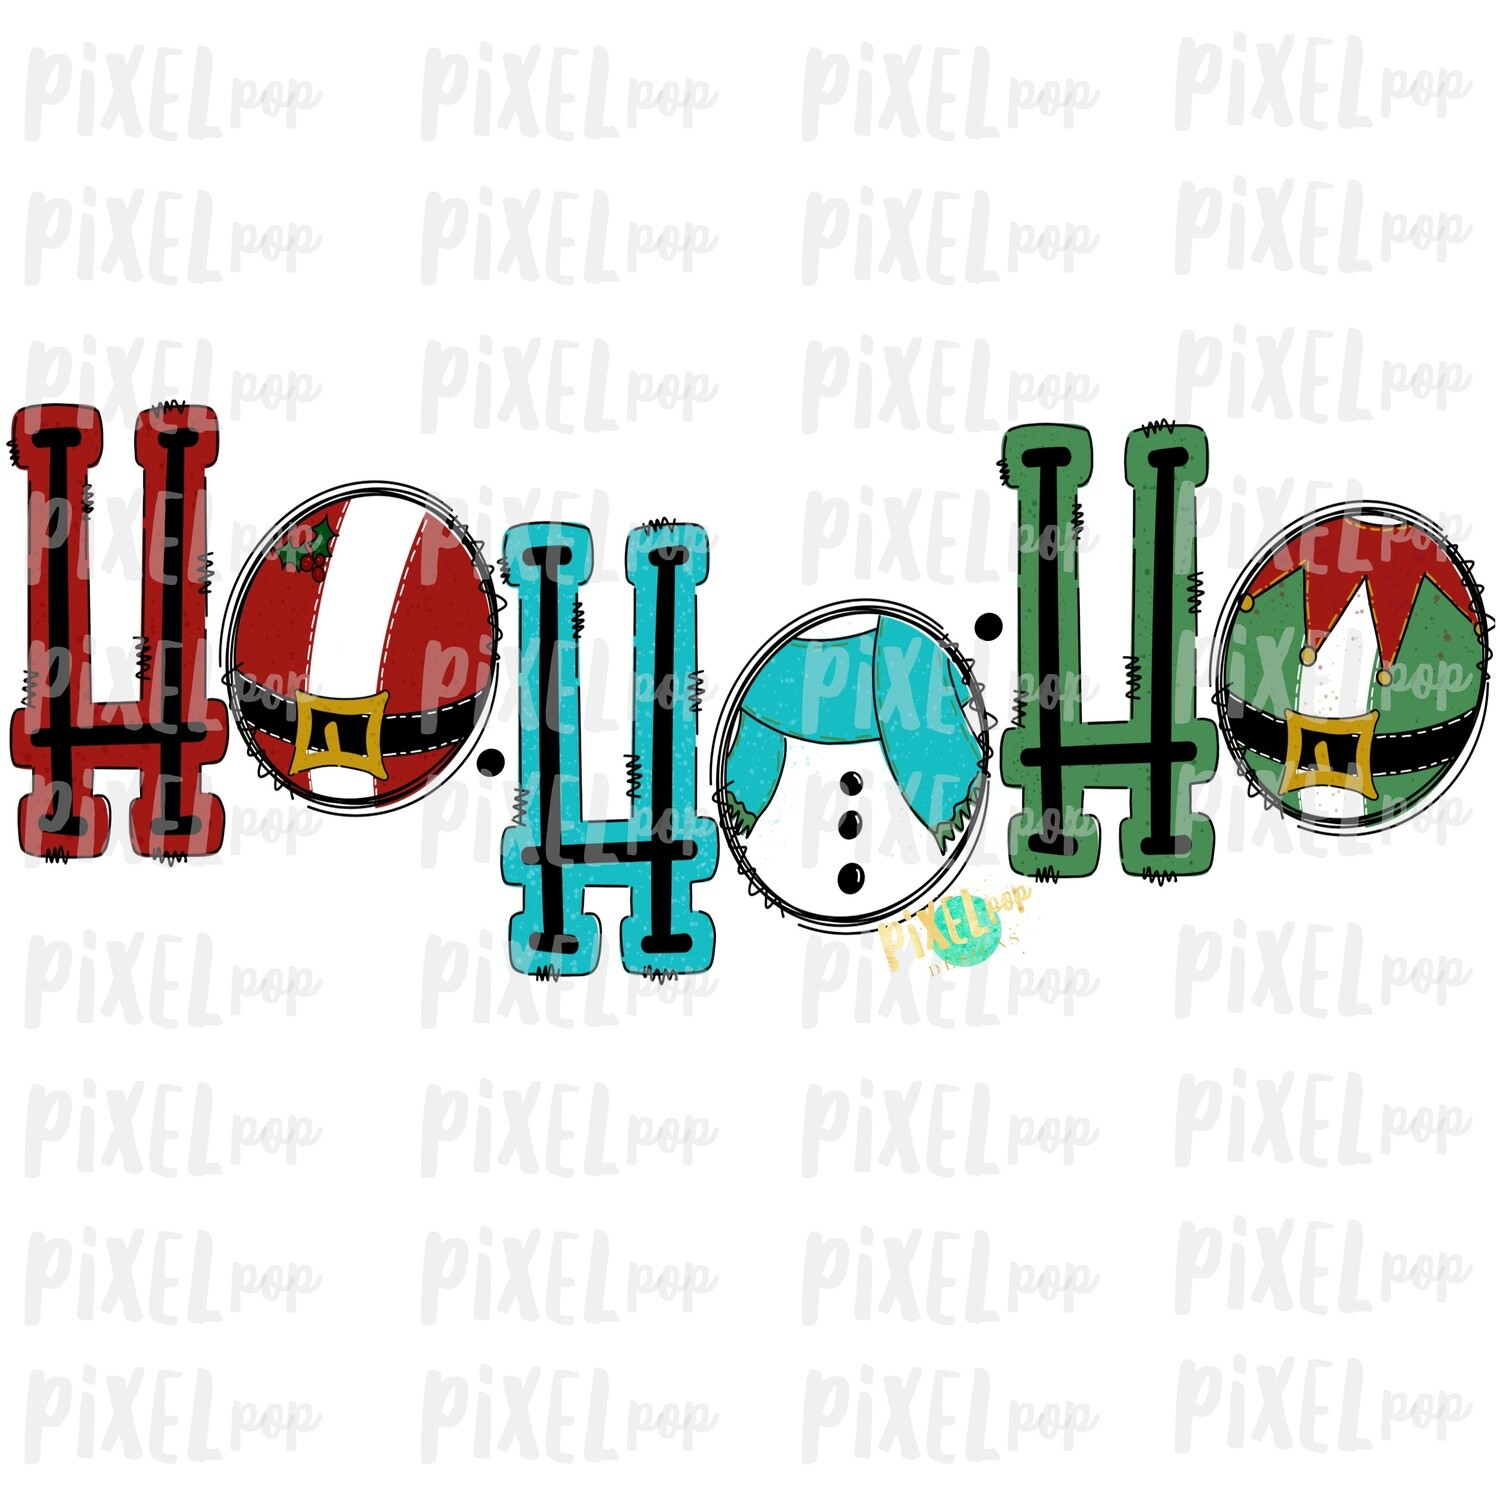 Ho Ho Ho Christmas Santa Elf Snowman Wording for Sublimation PNG | Hand Drawn Design | Sublimation PNG | Digital Download | Printable Art